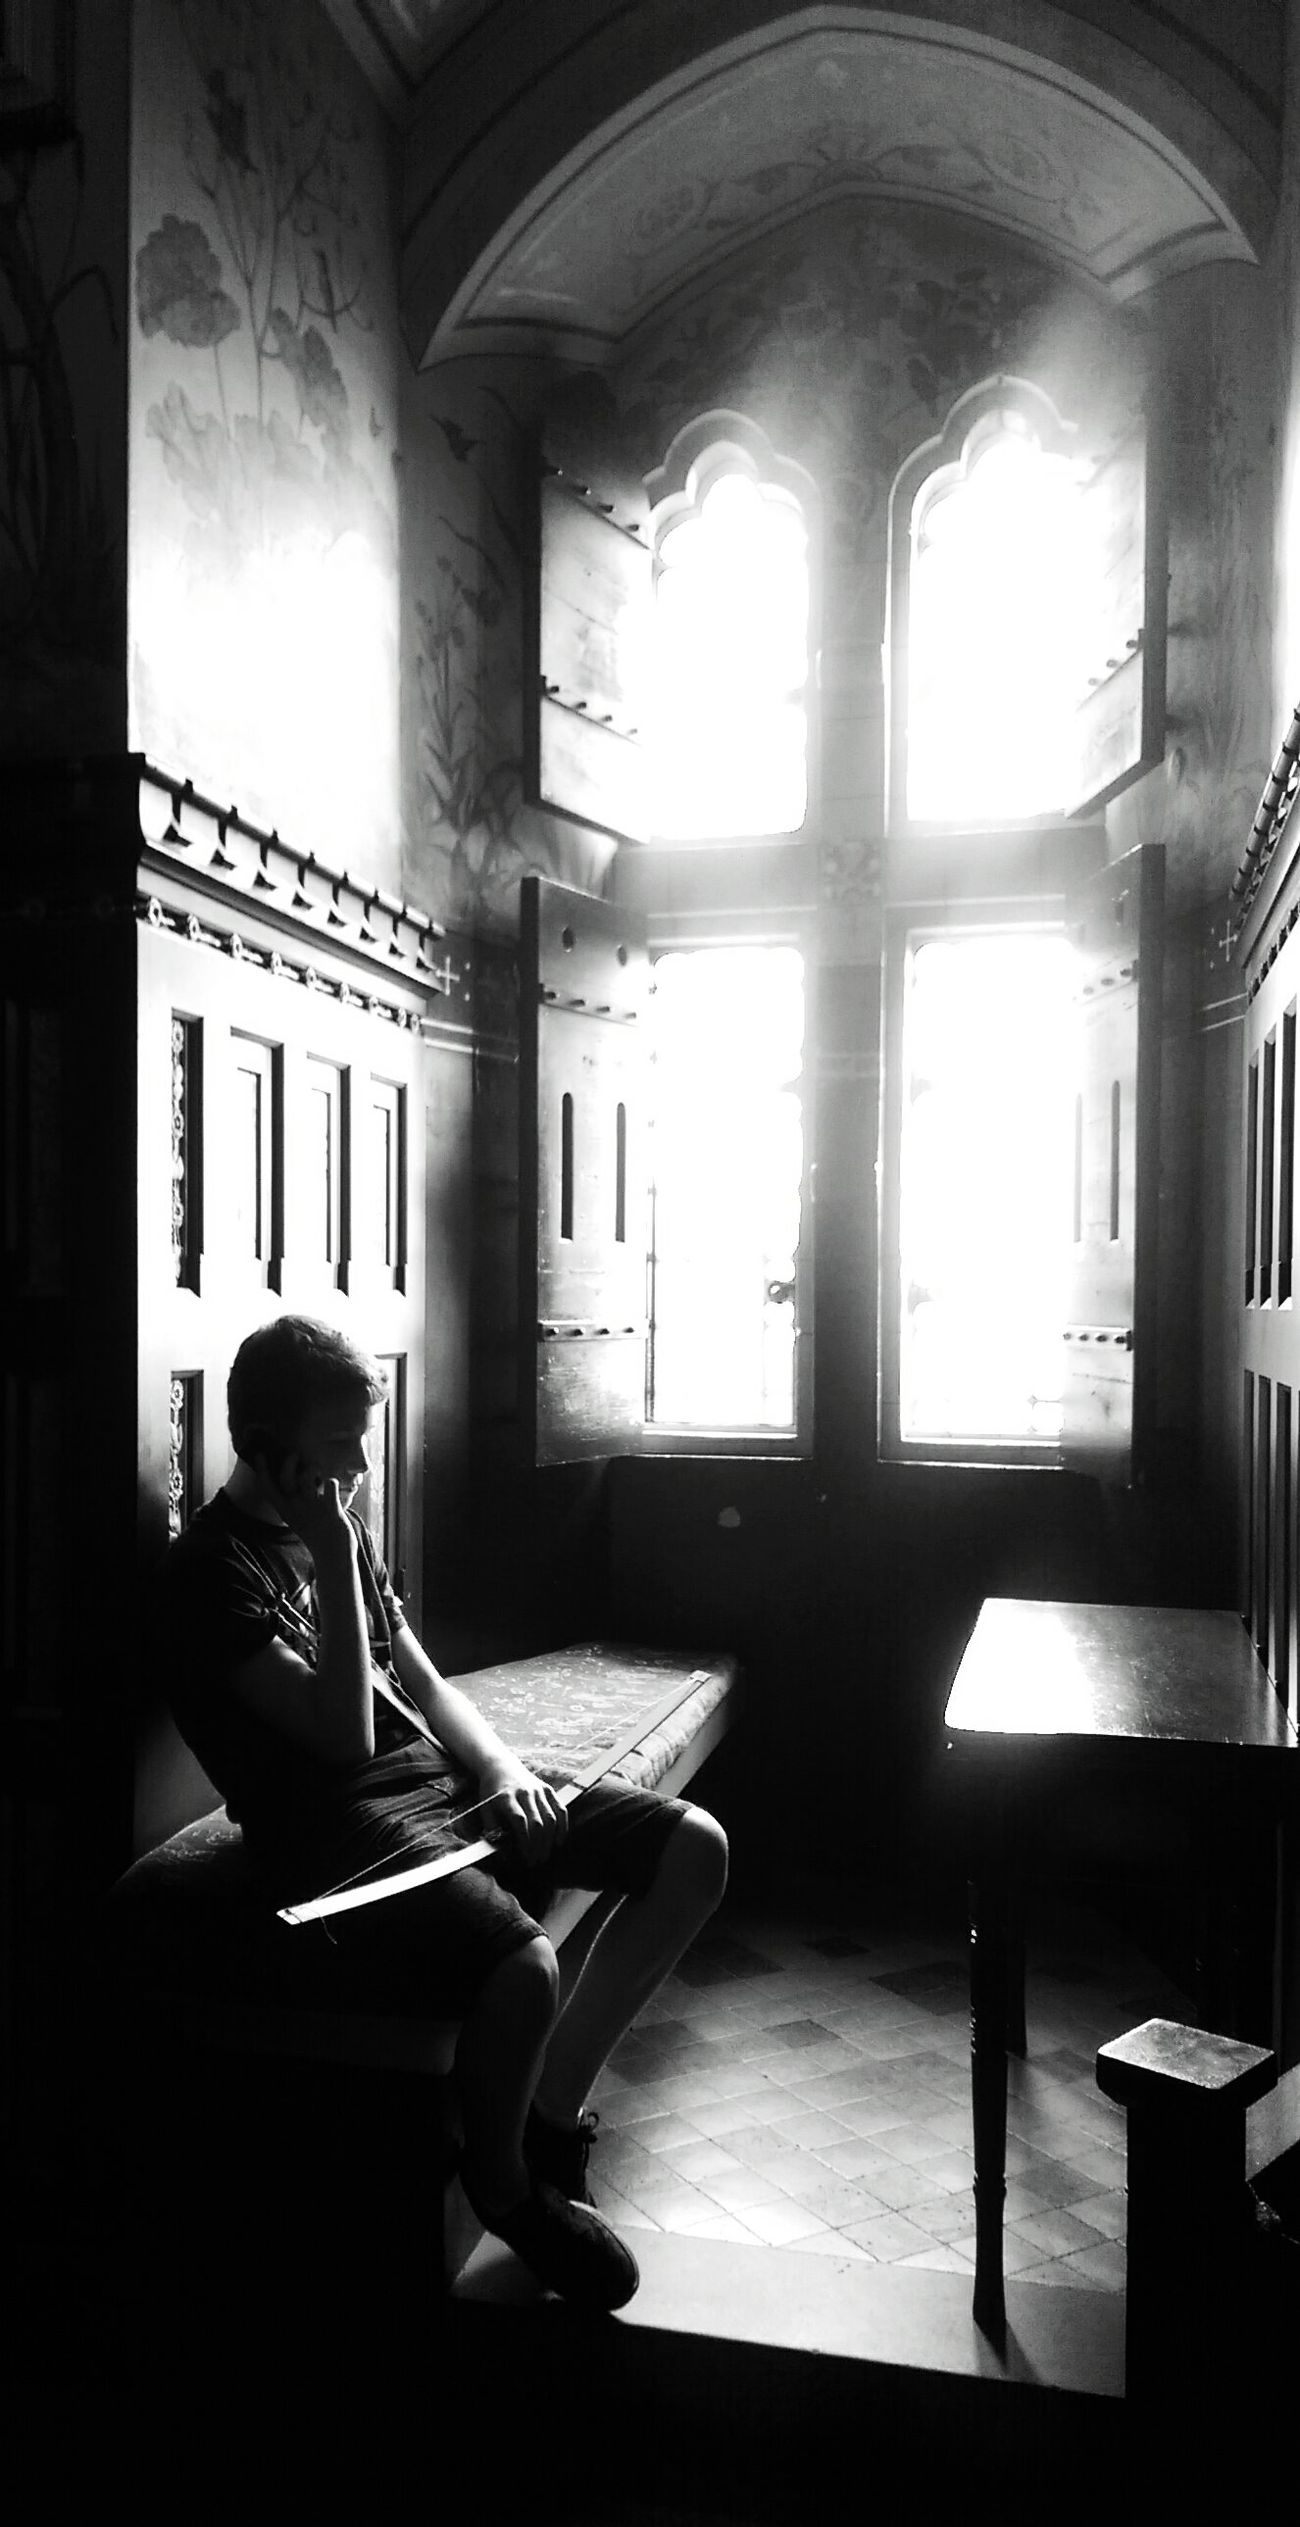 Blackandwhite Black & White Blackandwhite Photography Black&white Window Castles Beautiful Boy SpotlightsSitting Spotlight_shots Capture The Moment Sad & Lonely Sadness First Eyeem Photo Photography Spotlighting Cast Shadows Spotlighting Shadows & Lights Shadows And Silhouettes Shadow Play